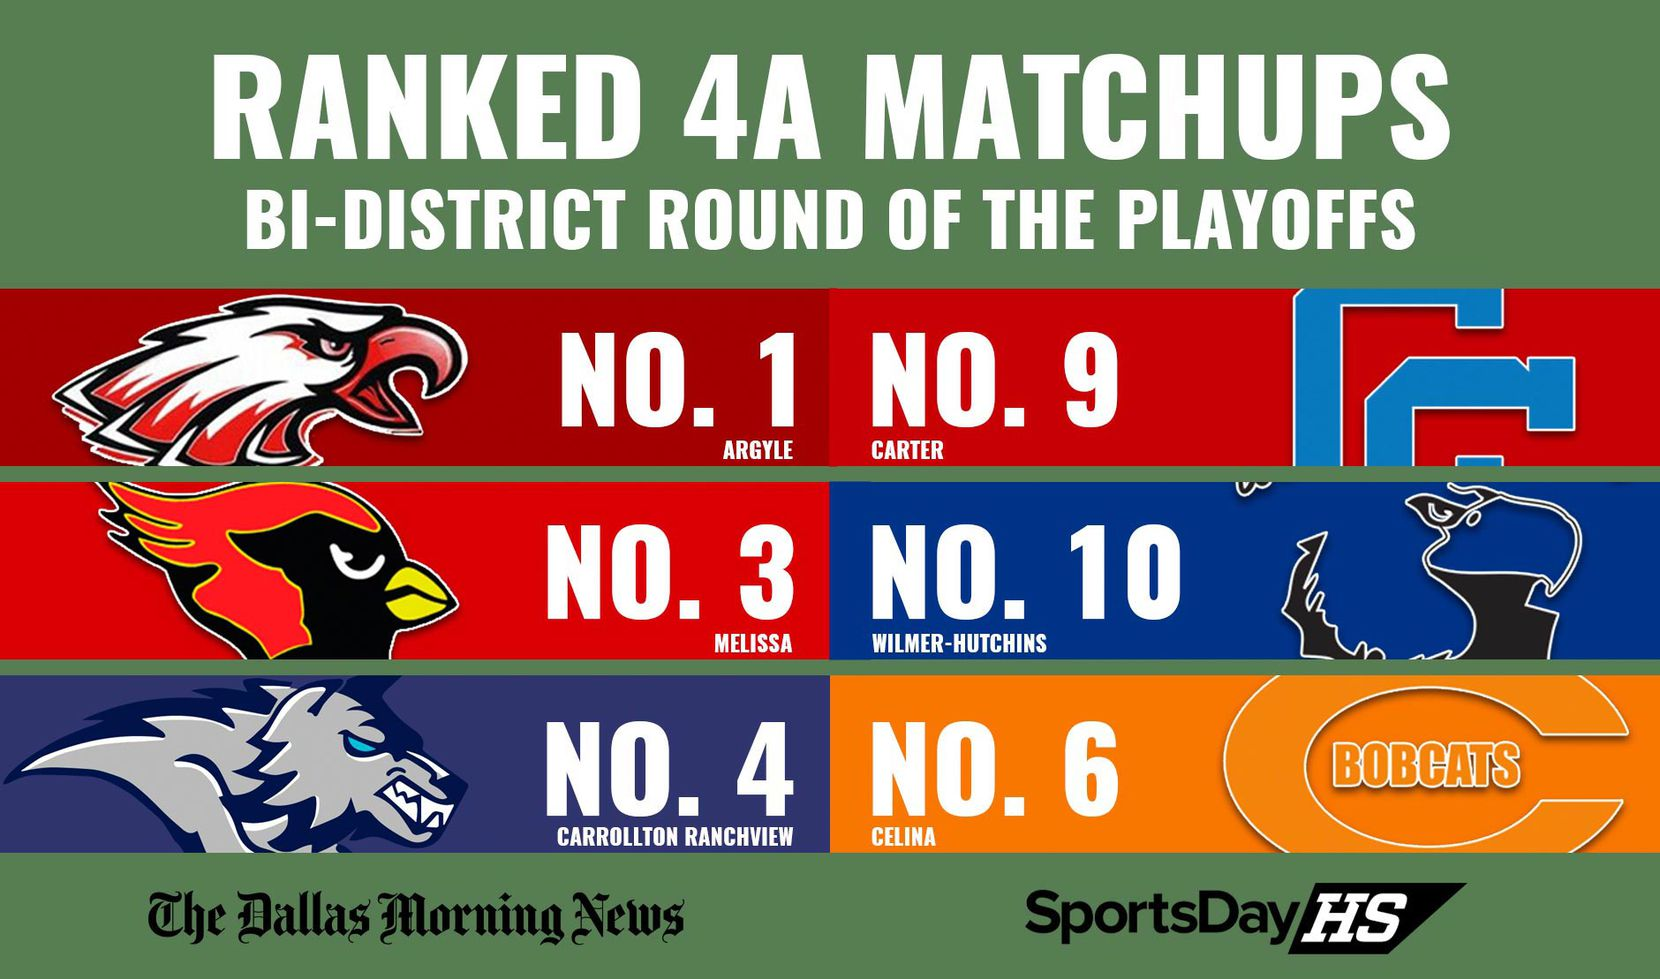 Ranked 4A matchups in the bi-district round of the playoffs.